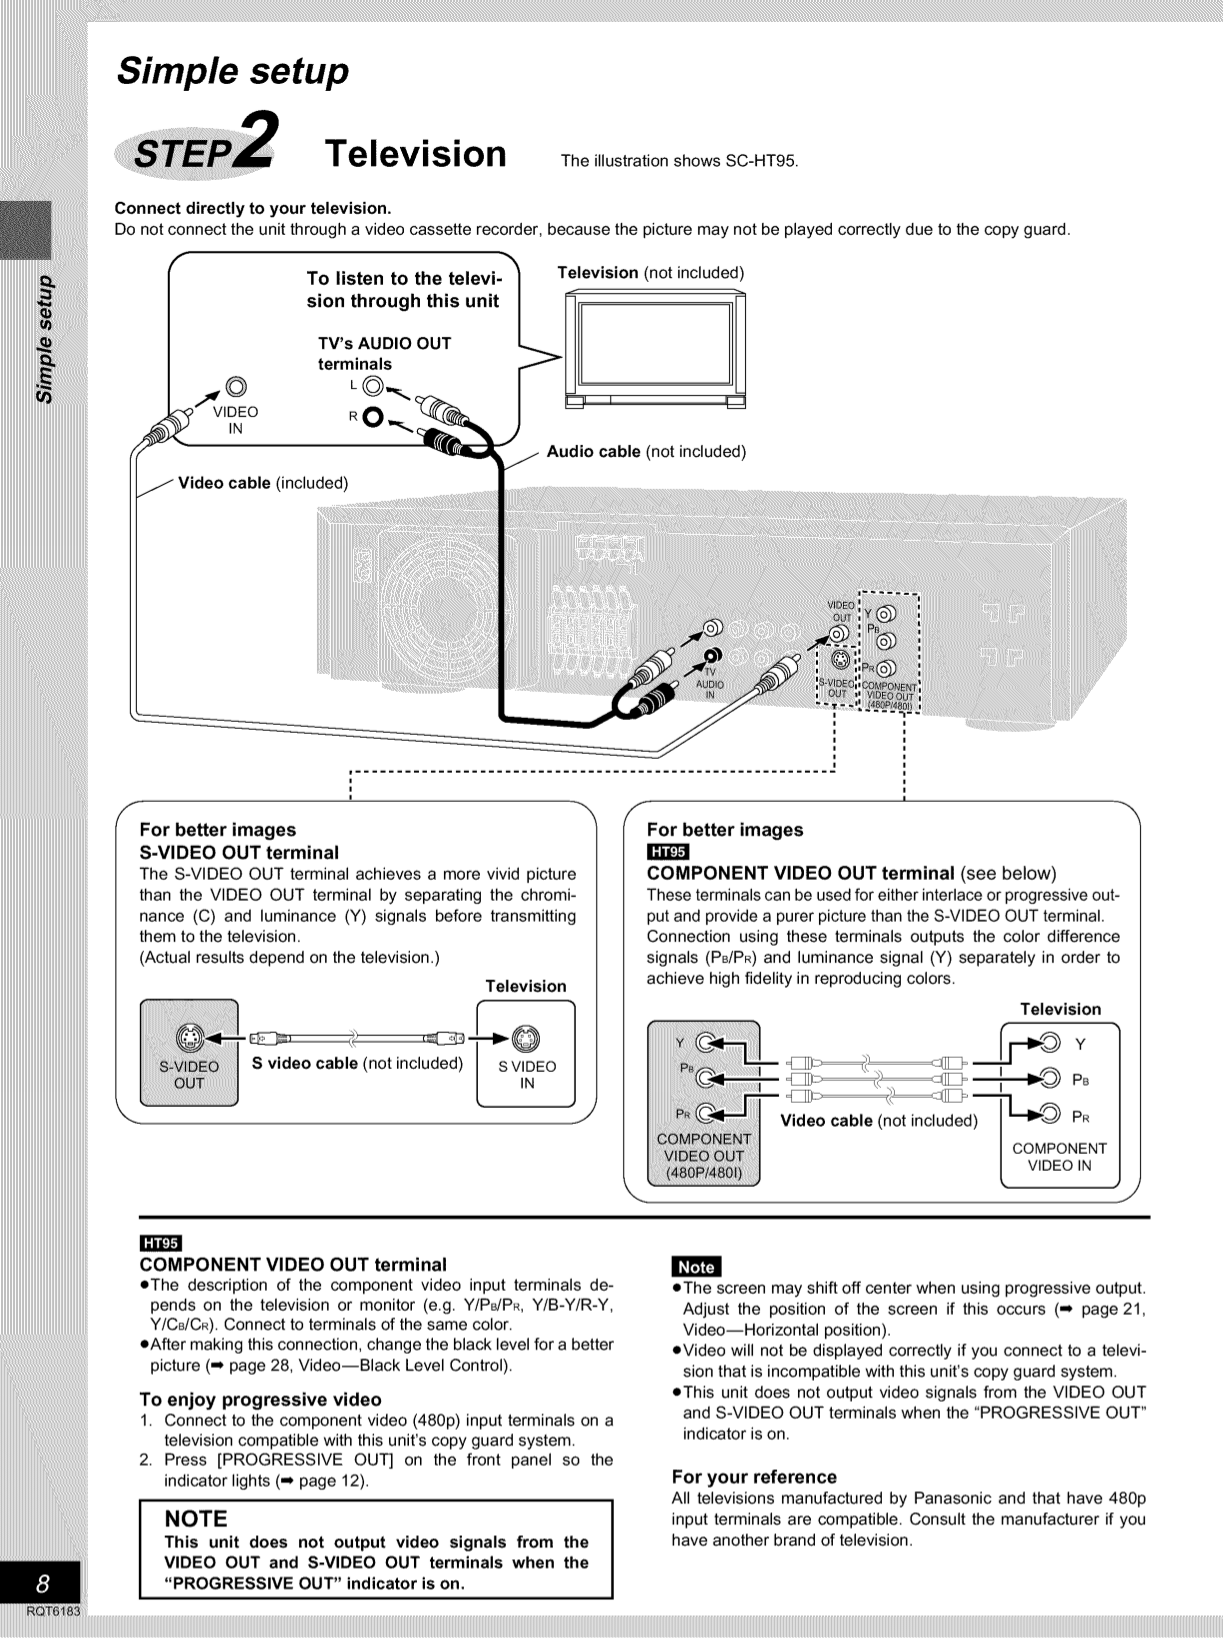 pdf manual for panasonic home theater sa ht75 rh umlib com panasonic sa-ht75 user manual panasonic sa-ht75 manual pdf